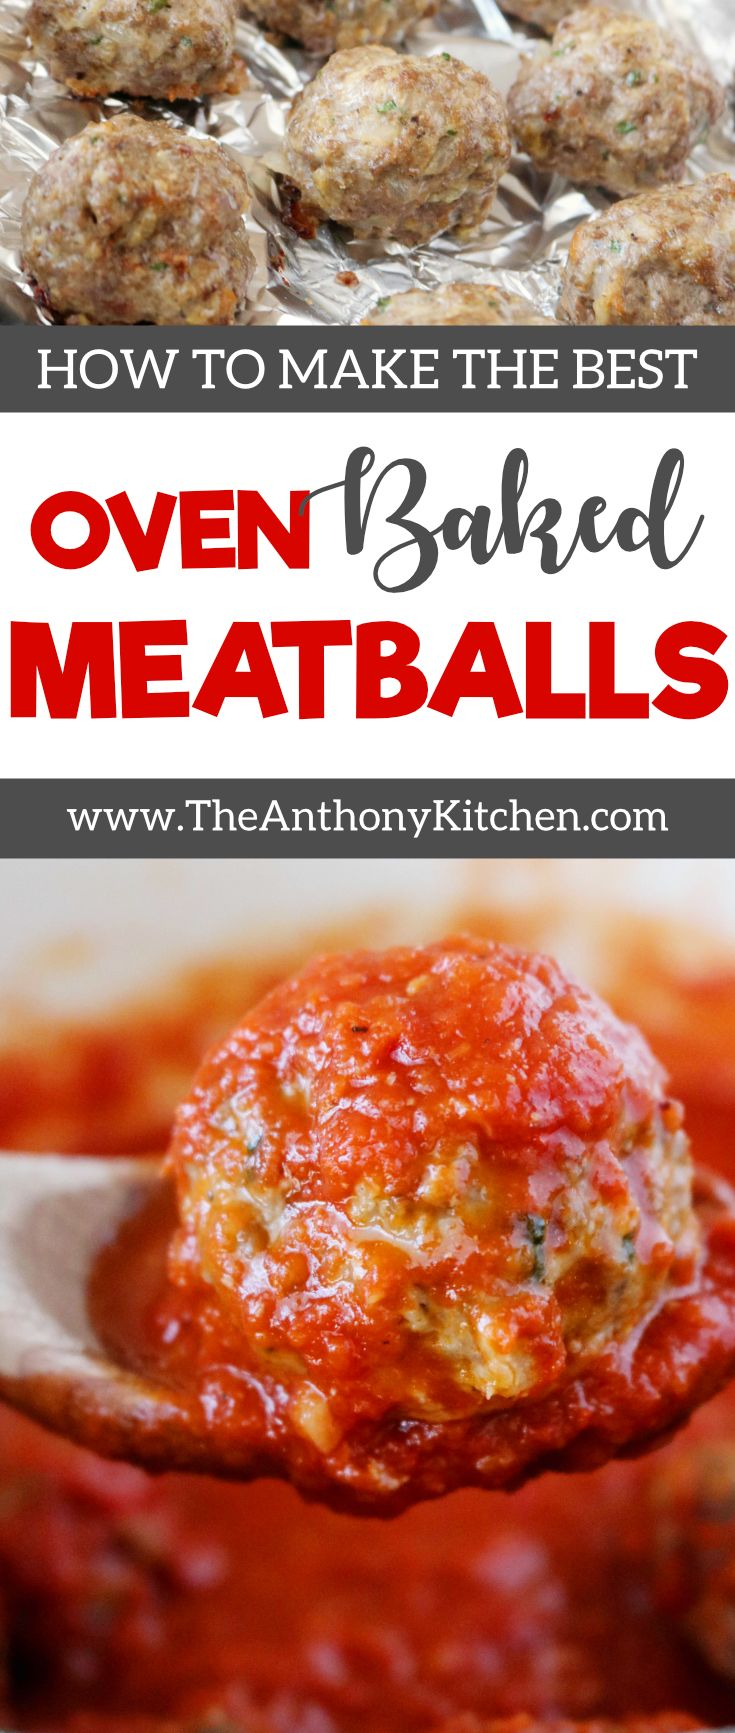 Easy Baked Meatball Recipe | A simple and easy recipe for Italian-style meatballs, made with ground beef and fresh breadcrumbs. Plus, how to make fresh breadcrumbs | #easymeatballrecipe #kidfriendlydinner #homemademeatballs #comfortfooddinner